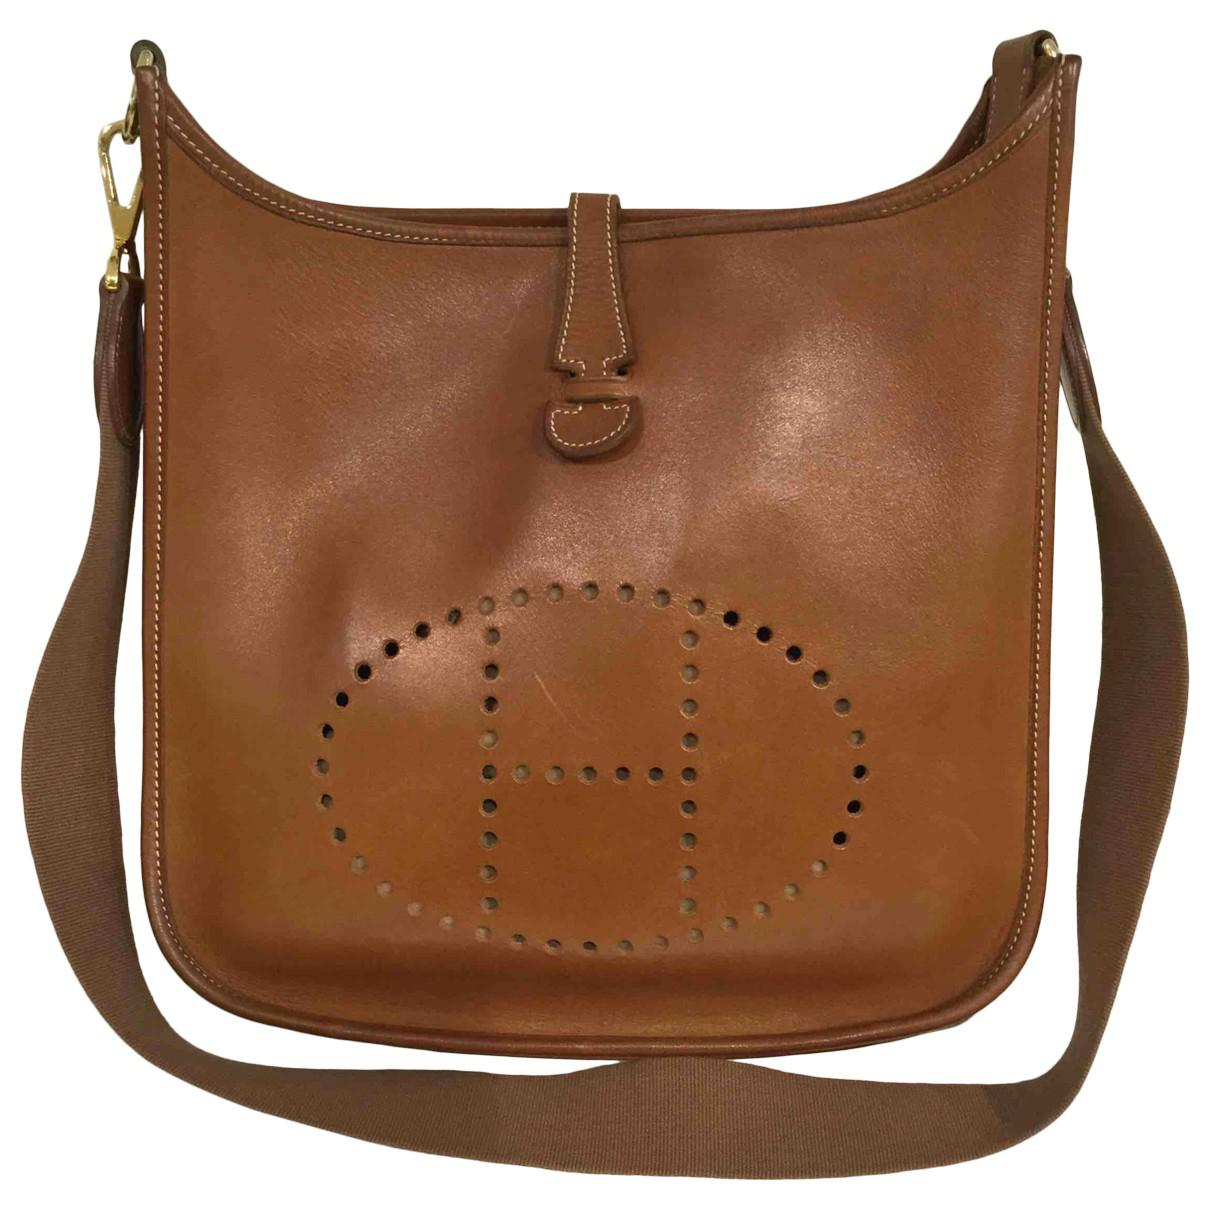 1e80bcd78d Lyst - Hermès Pre-owned Evelyne Leather Handbag in Brown